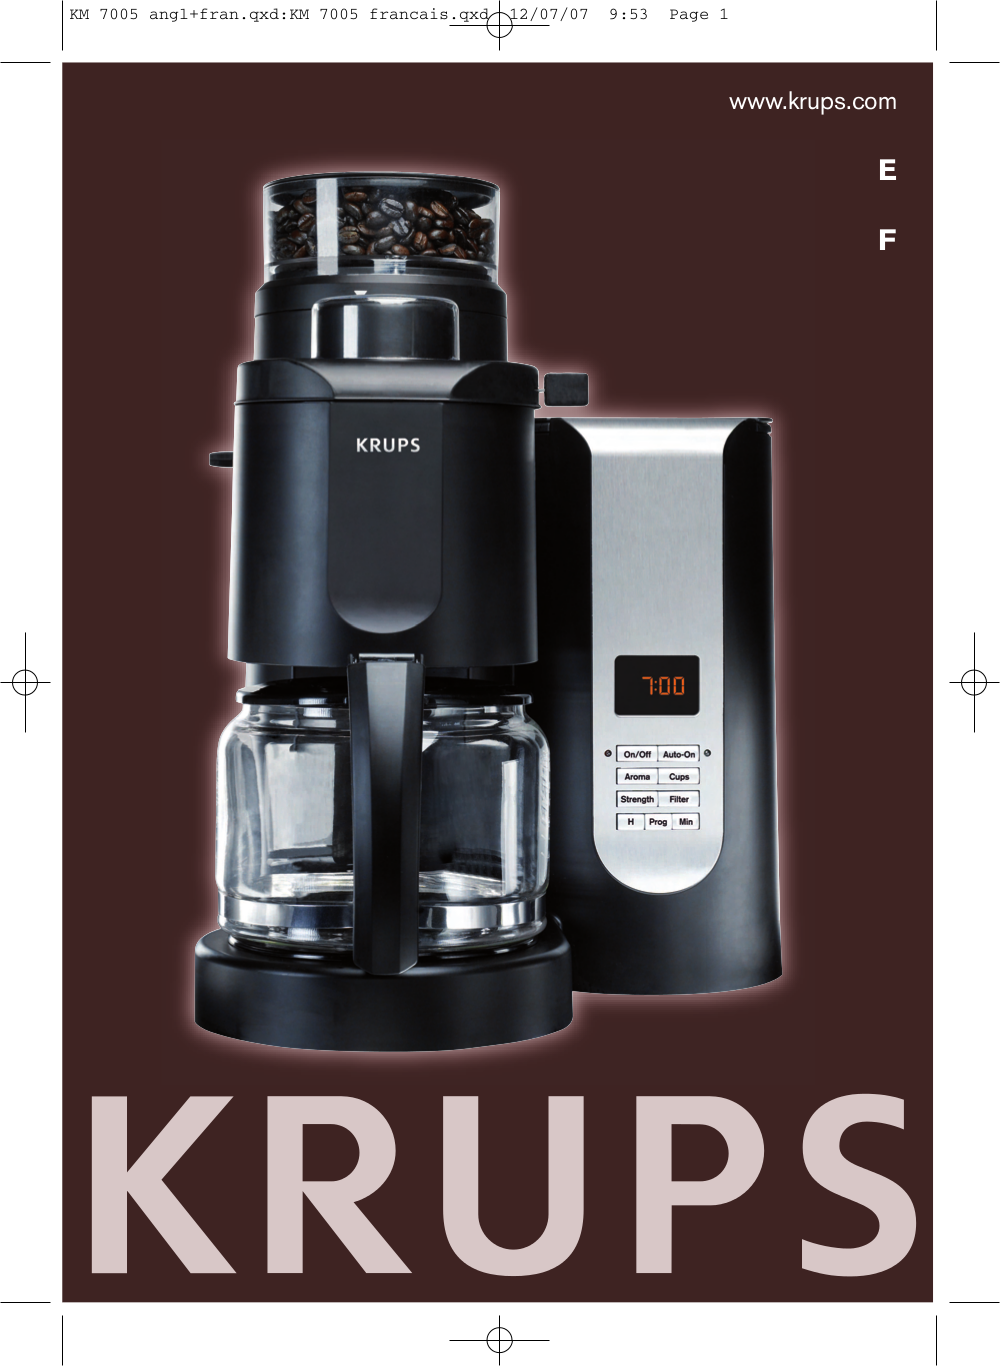 Krups Coffee Maker Km1000 Manual : Download free pdf for Krups KM7000 Coffee Maker manual